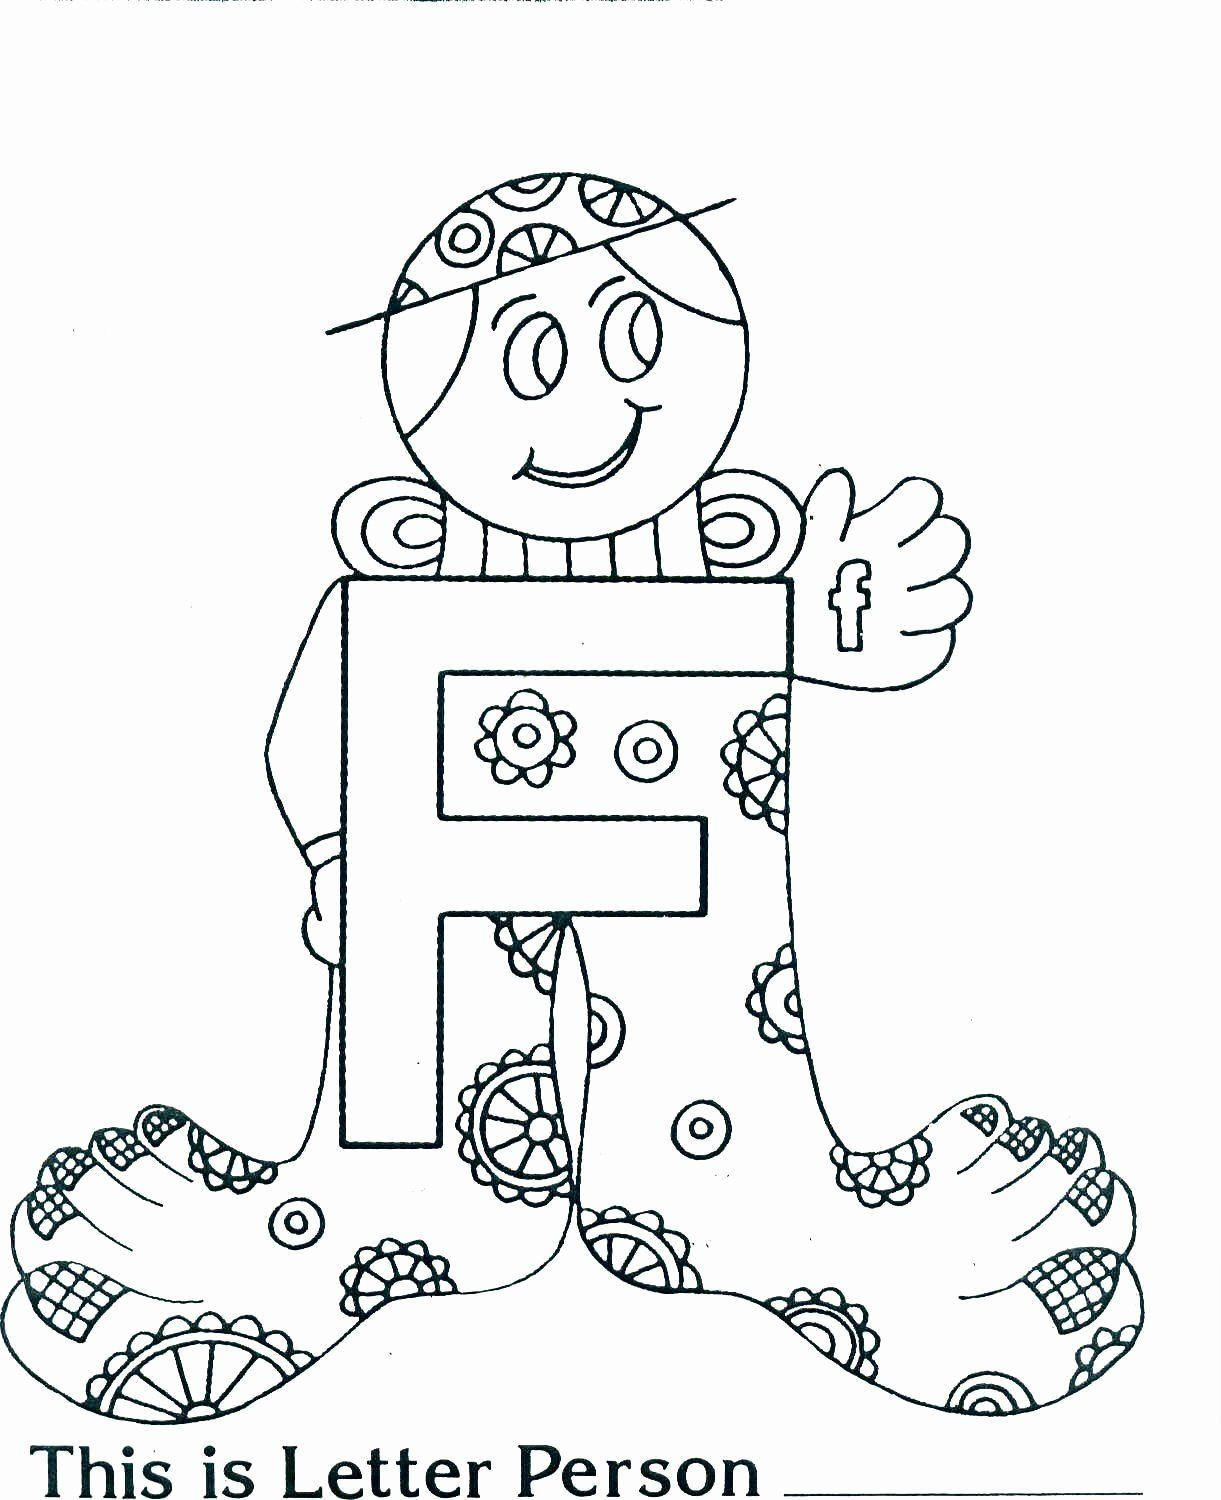 Letter People Coloring Pages Lovely Amazing Letter Y Ideas The Letter Y Coloring Pages Collection Letter People People Coloring Pages Lettering